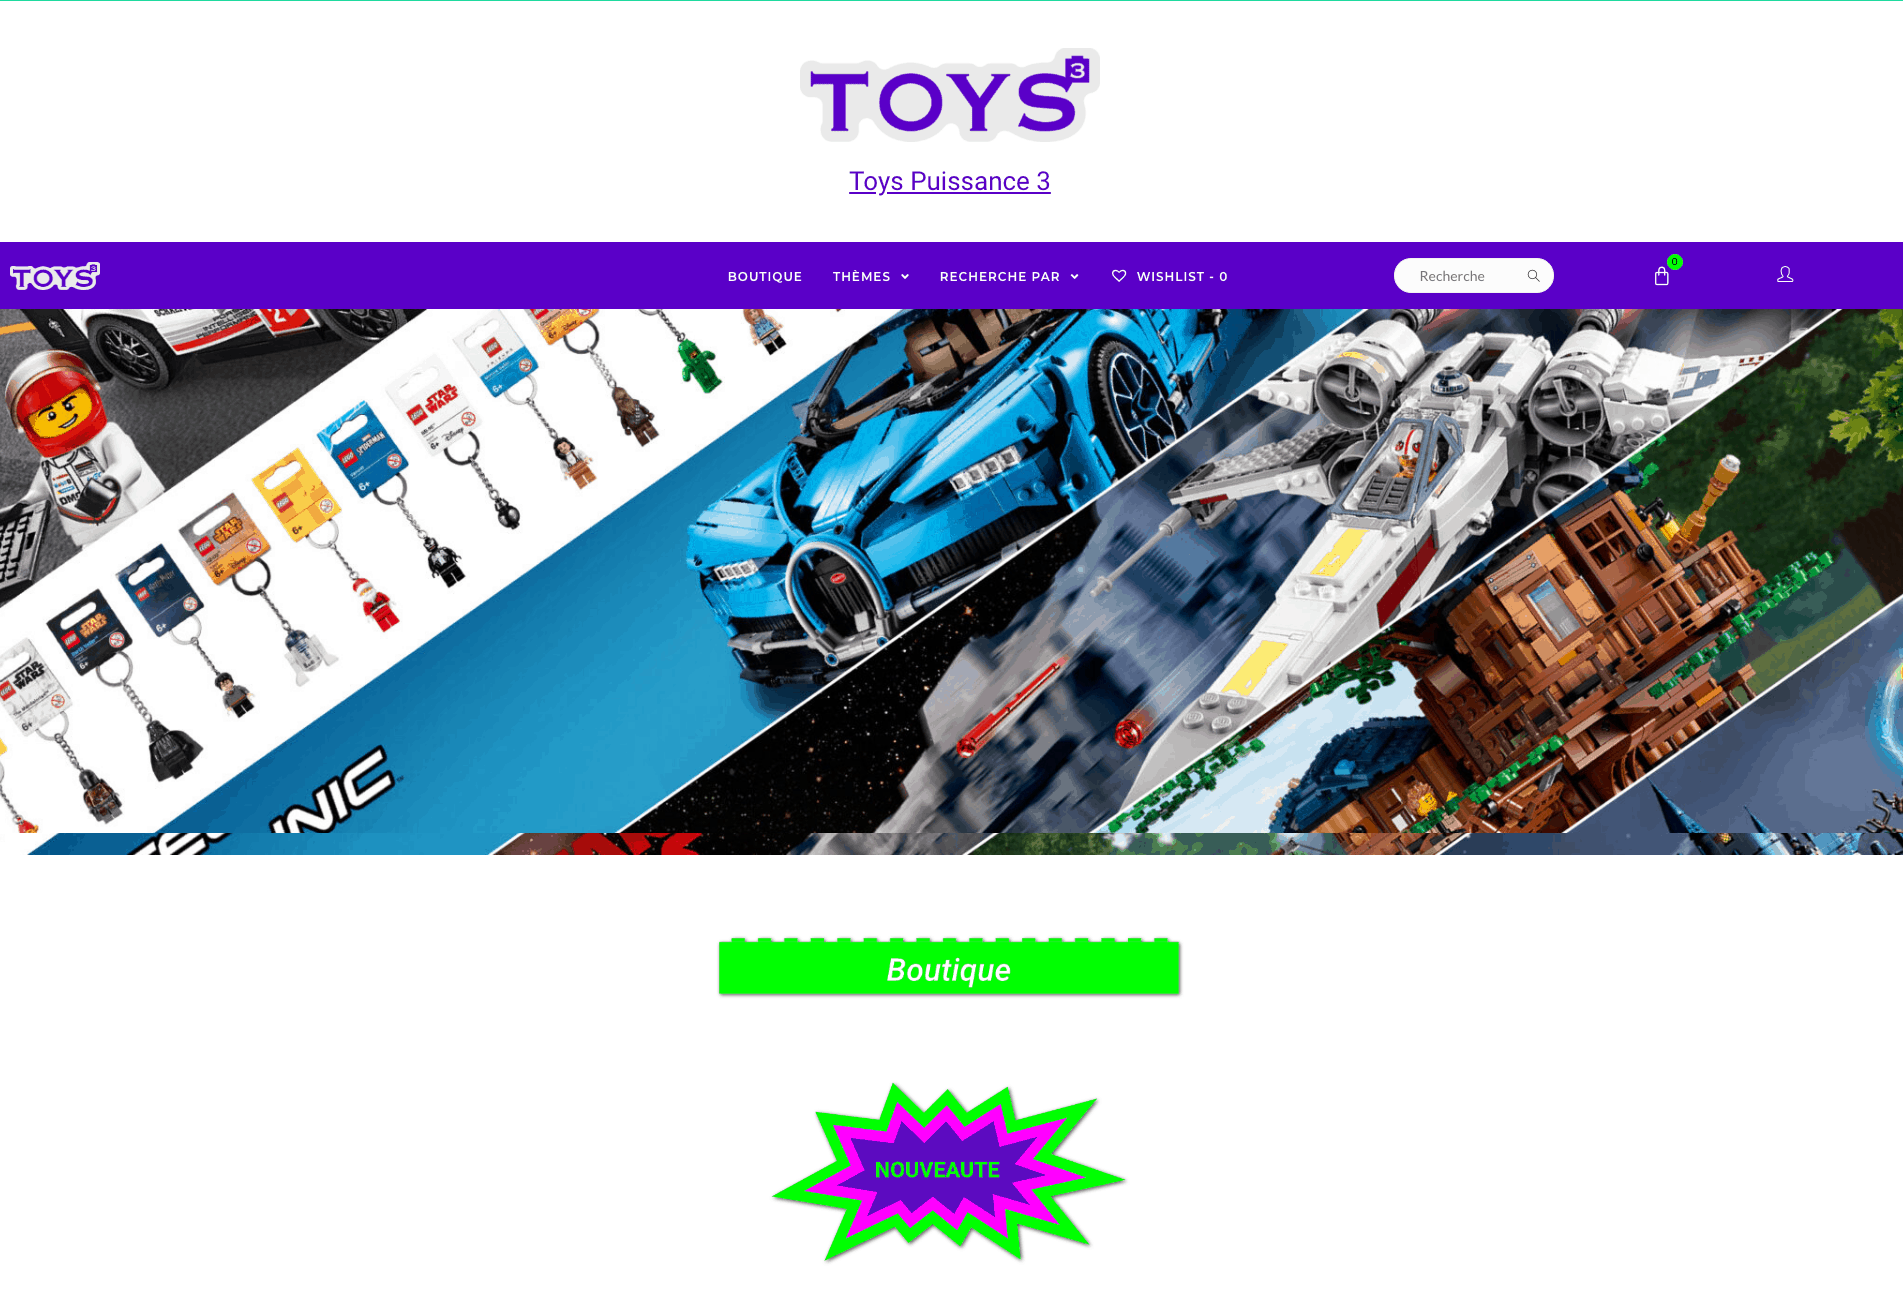 Toys-Puissance-3 by imaginewebsite